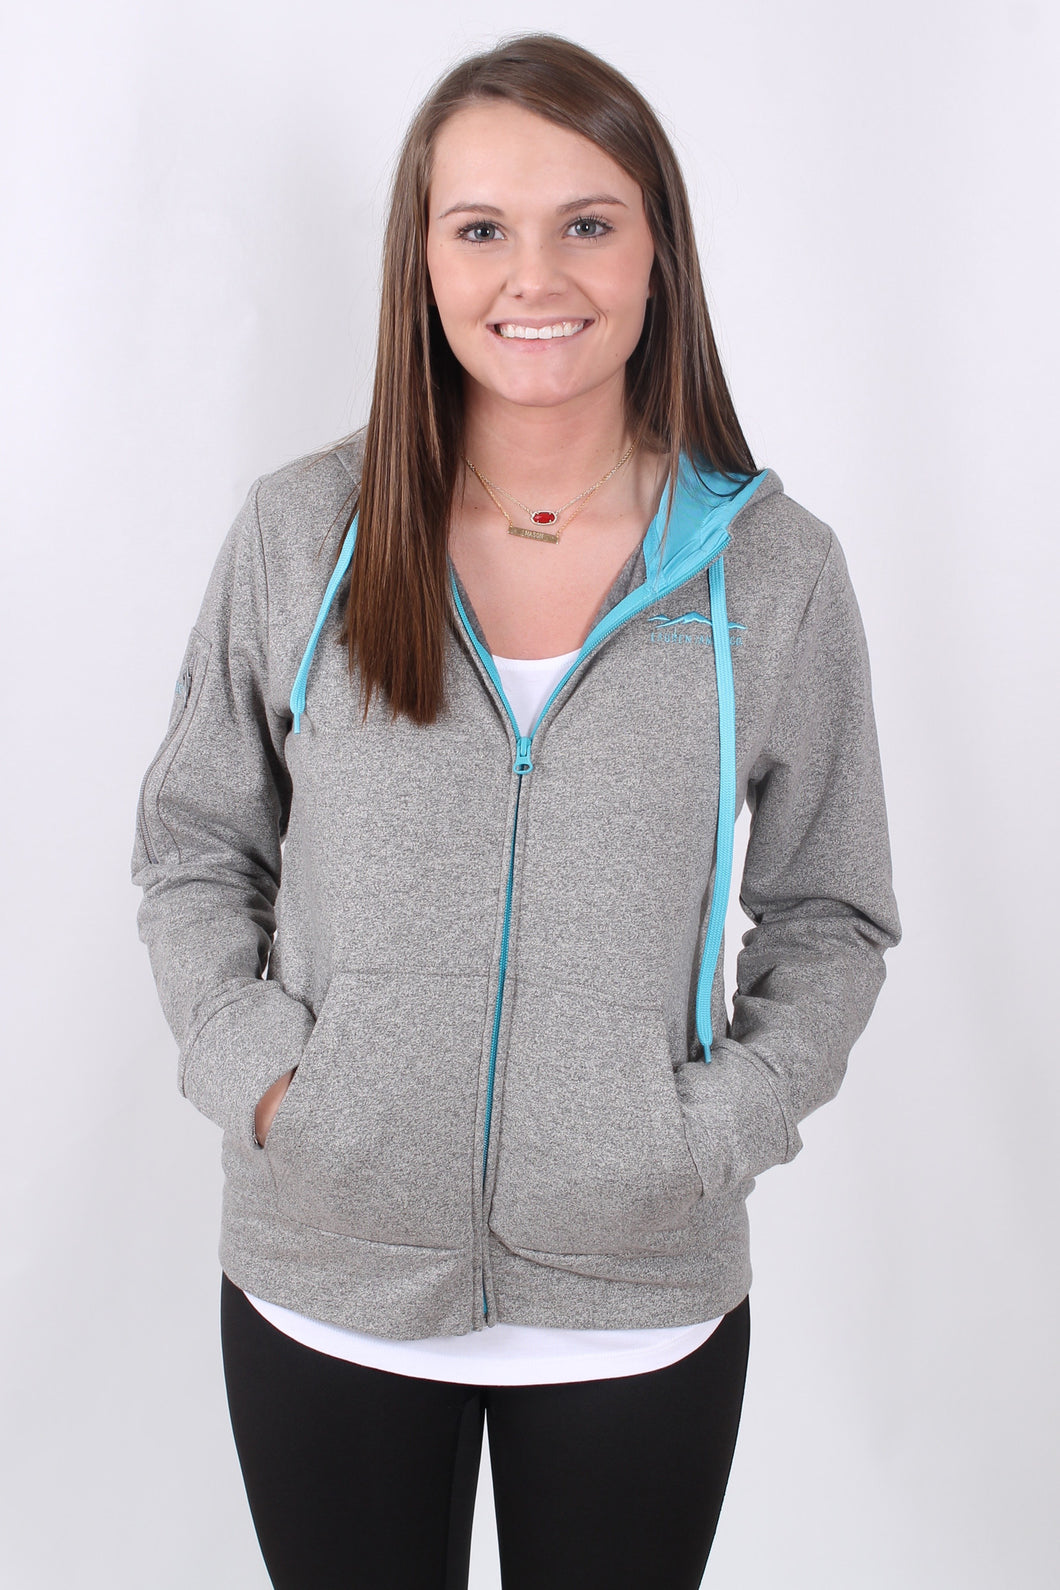 Grey and Glacier Blue Jacket- Lauren James Preptec Zip Hoodie Front